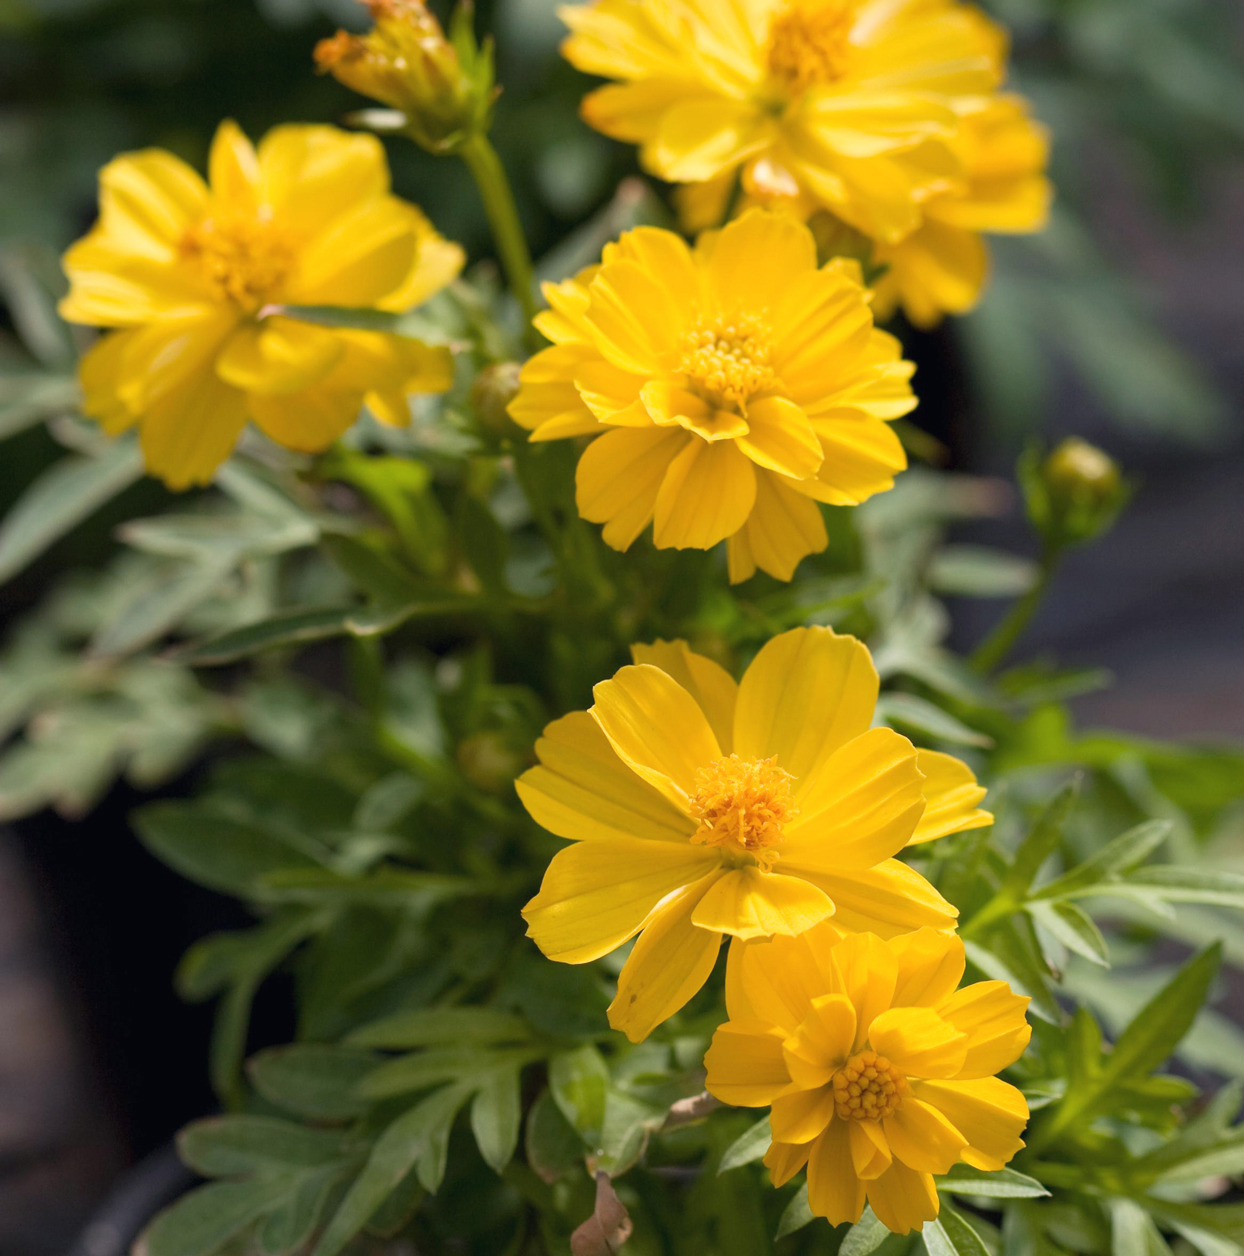 'Cosmic Yellow' cosmos